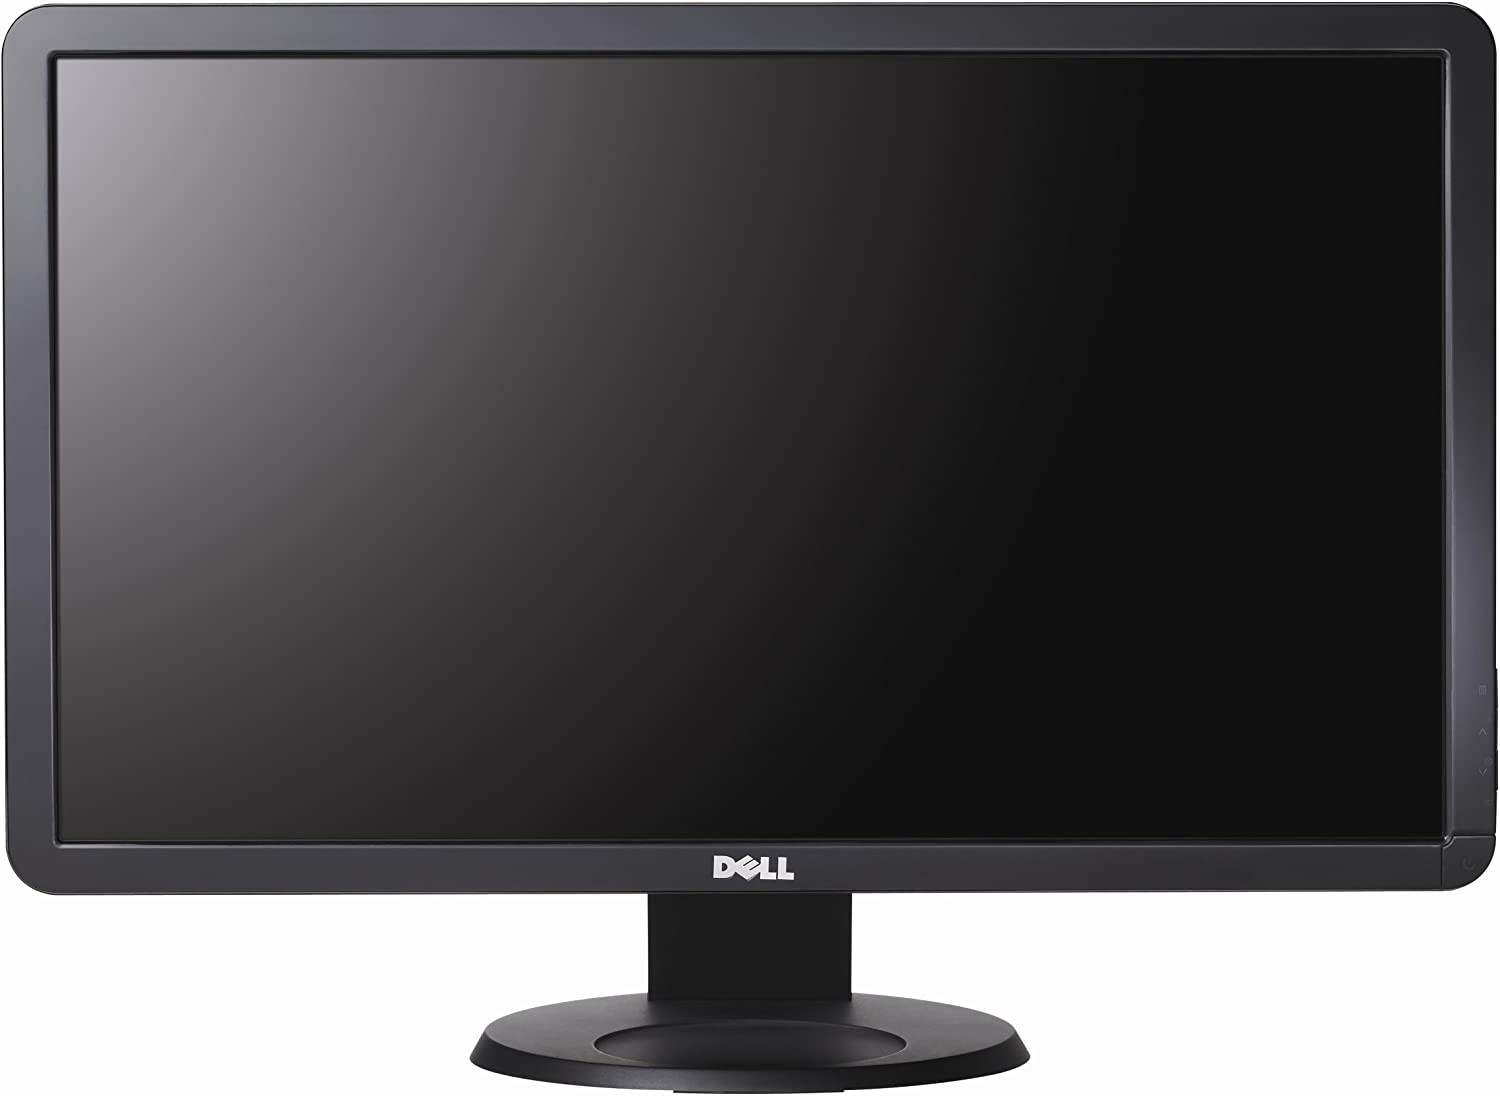 Dell S2409W 24-Inch LCD Widescreen Monitor (Discontinued by Manufacturer)